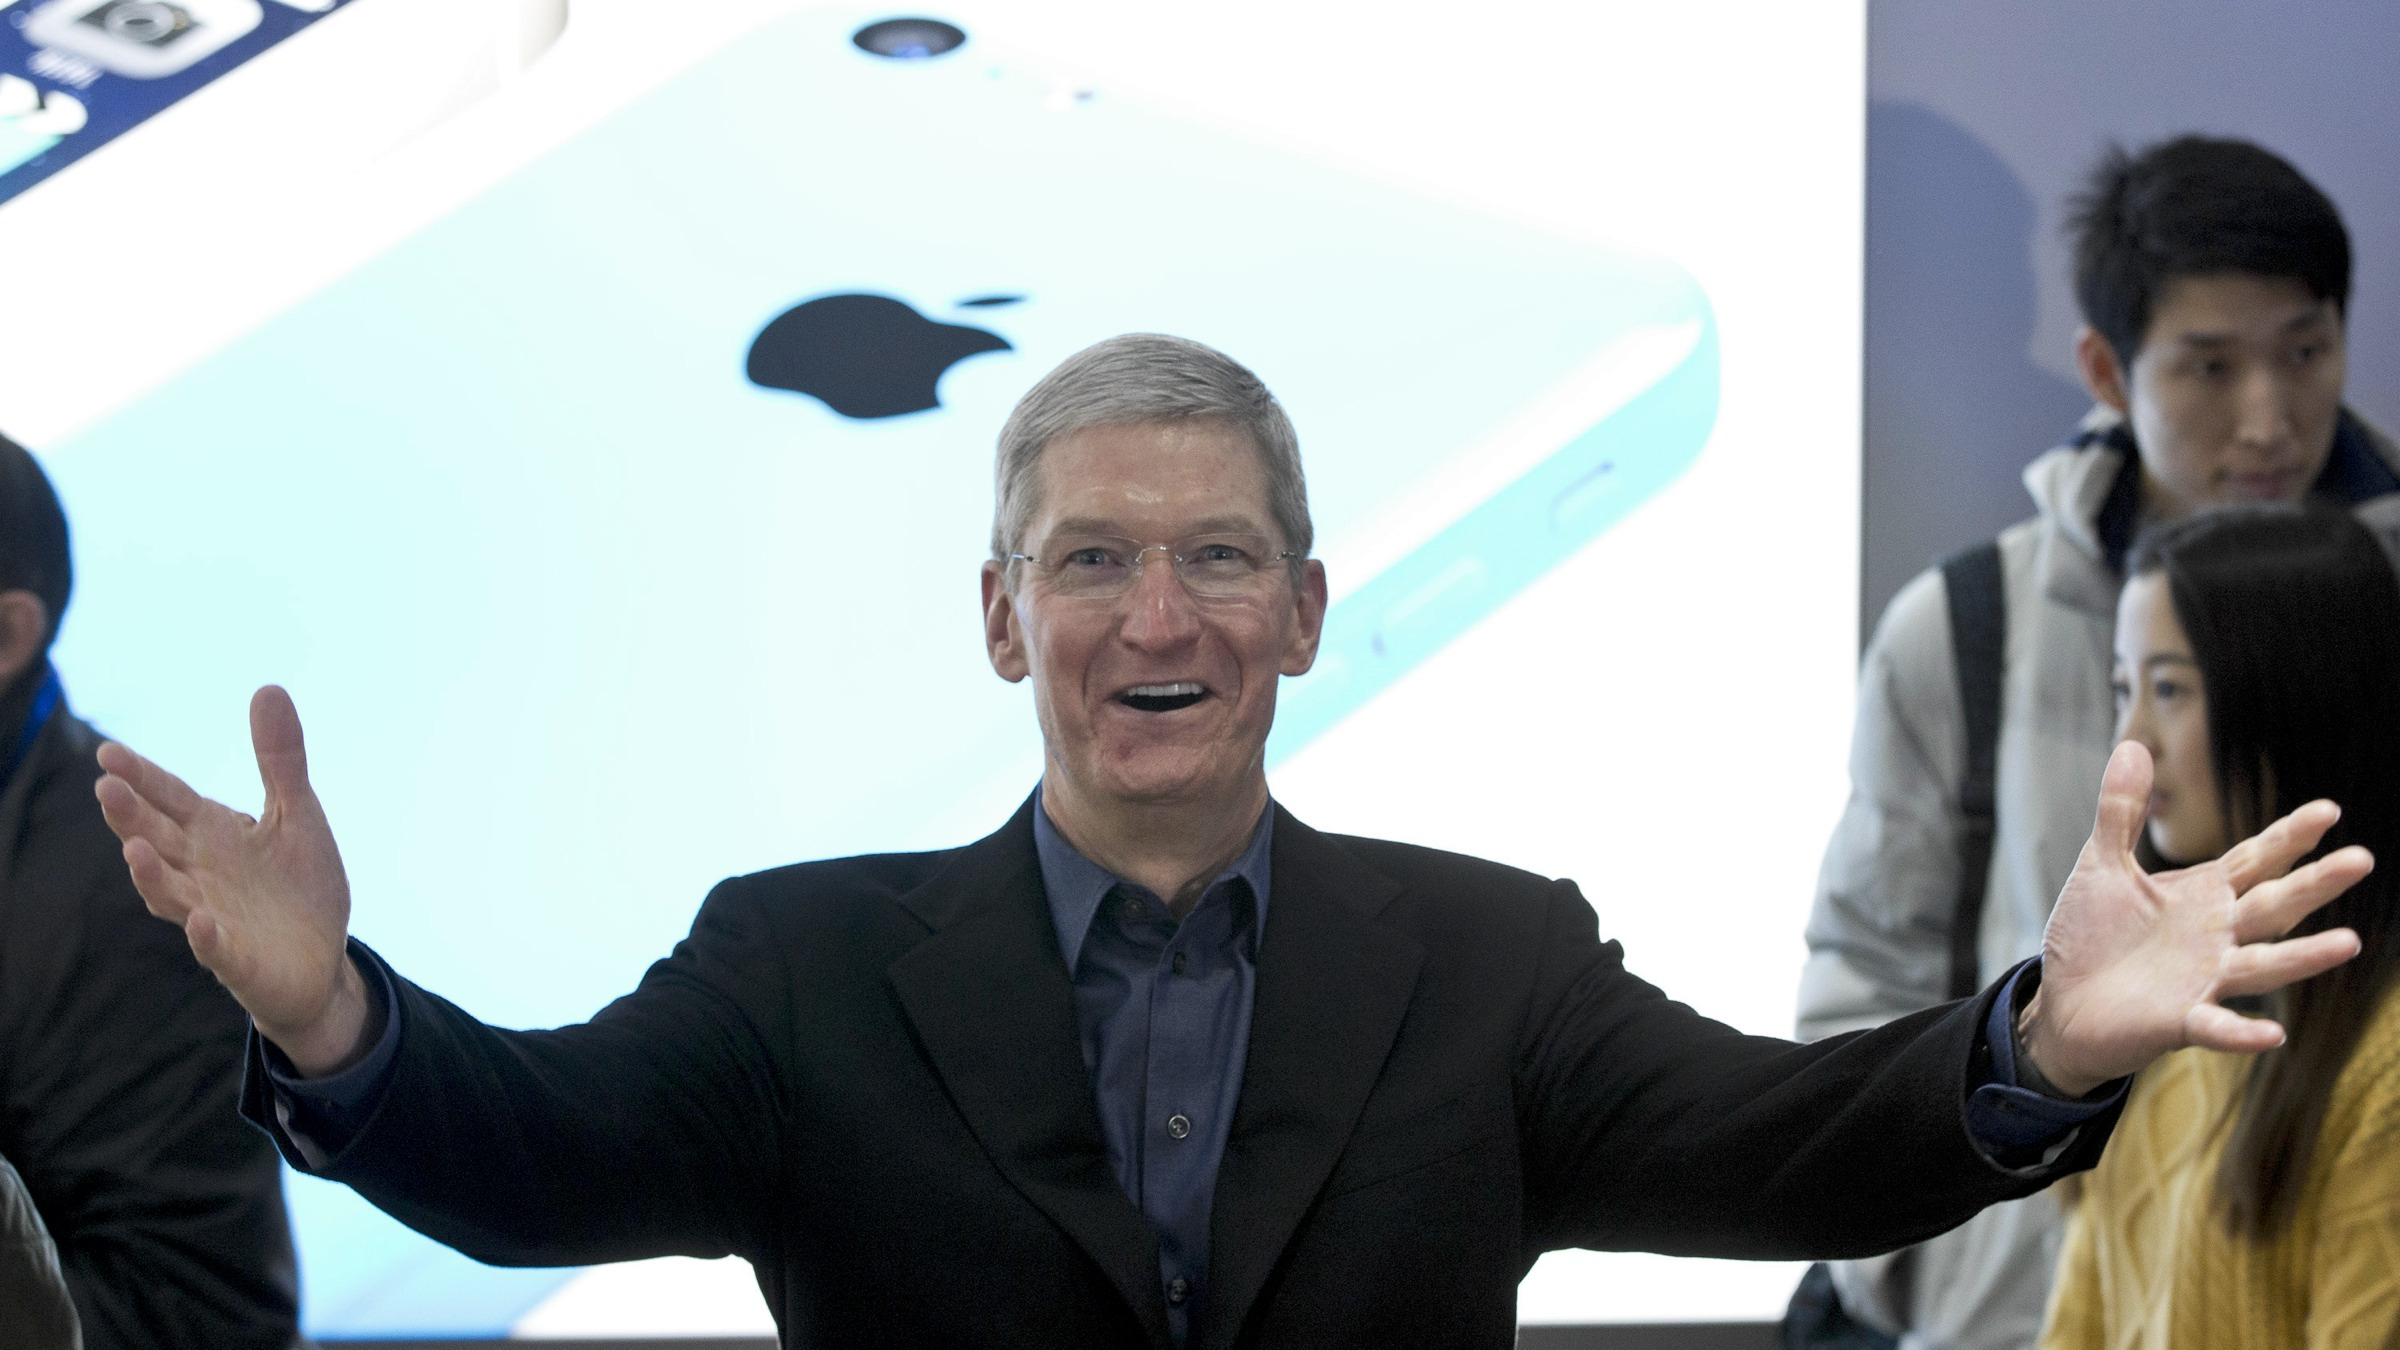 Apple's CEO Tim Cook gestures during a promotional event that marks the opening day of sales of China Mobile's 4G iPhone 5s and iPhone 5c at a shop of the world's largest mobile phone operator in Beijing, China, Friday, Jan. 17, 2014. (AP Photo/Alexander F. Yuan)